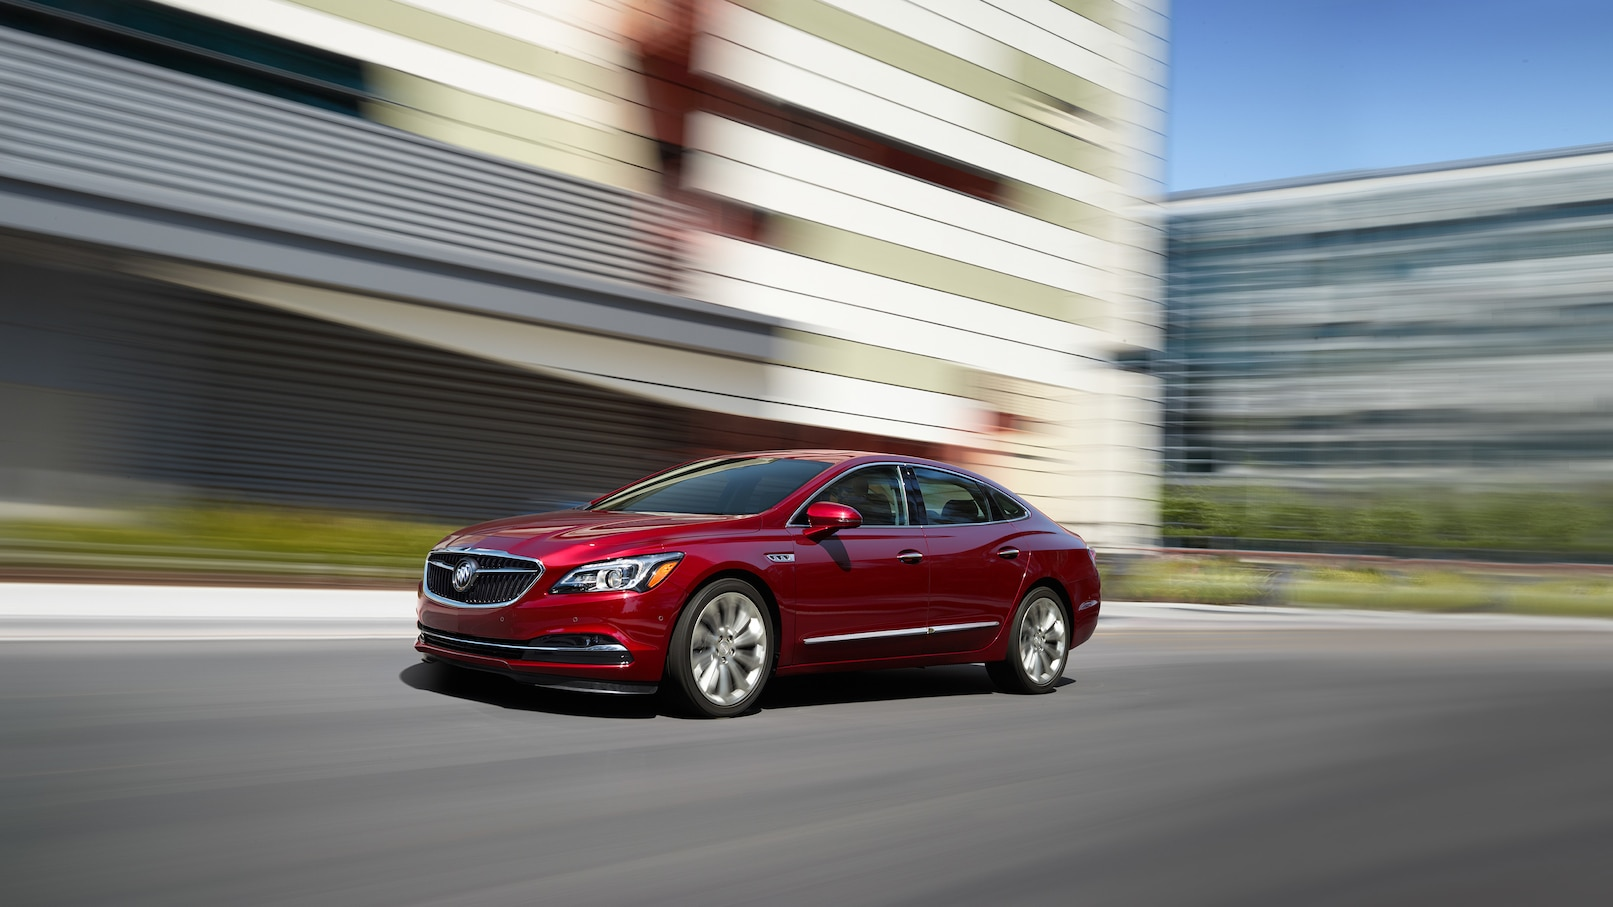 2020 Buick Lacrosse Release Date, Price, Safety, Features